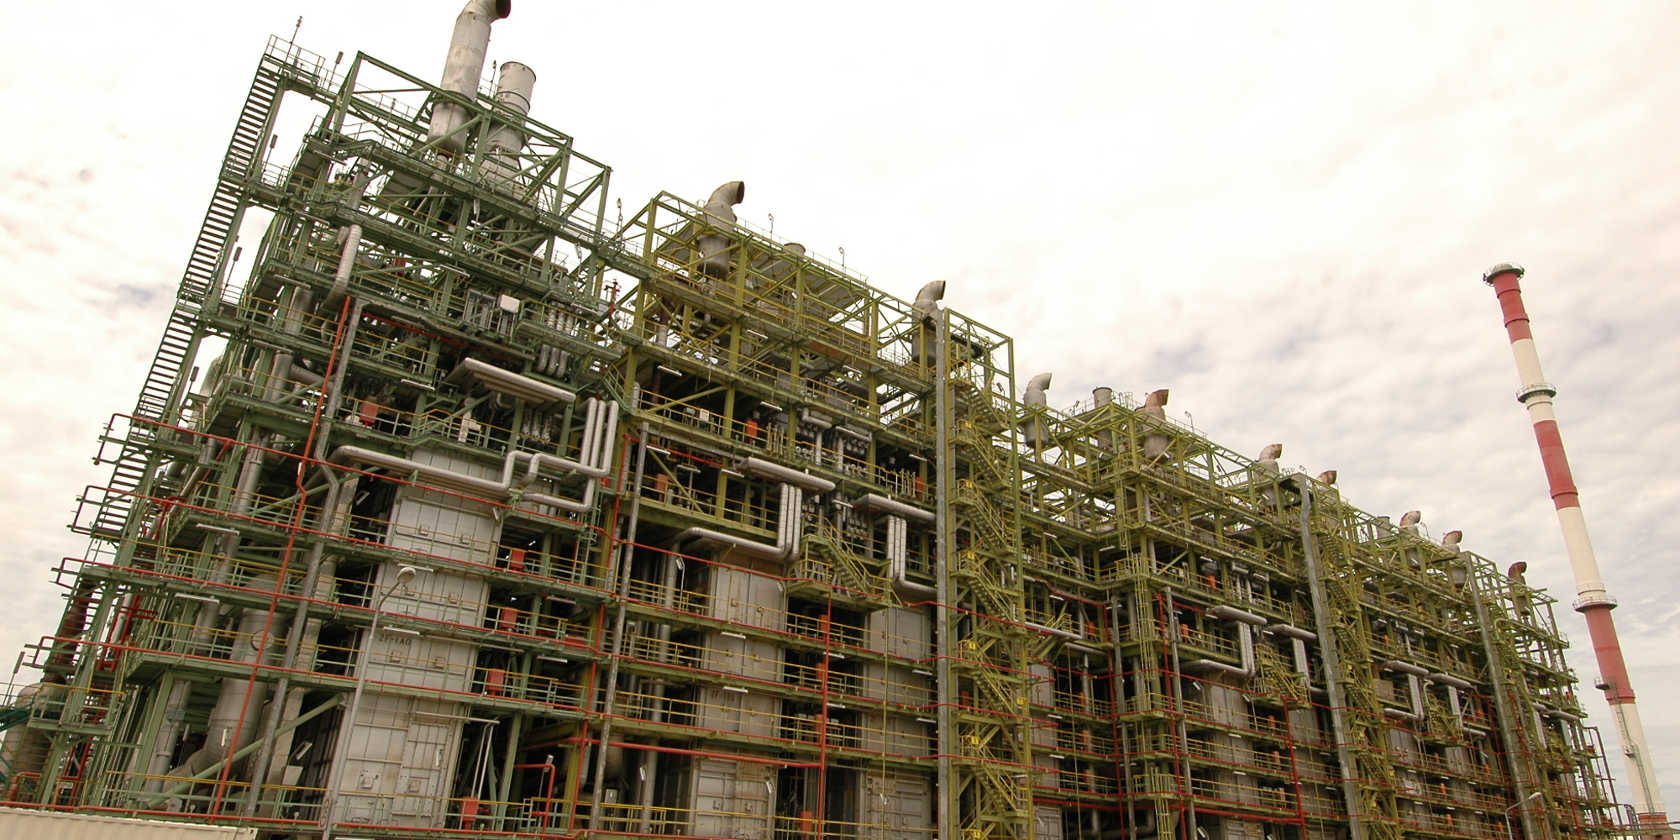 Southeast Asian Naphtha Crackers Beset by Temporary Shutdowns